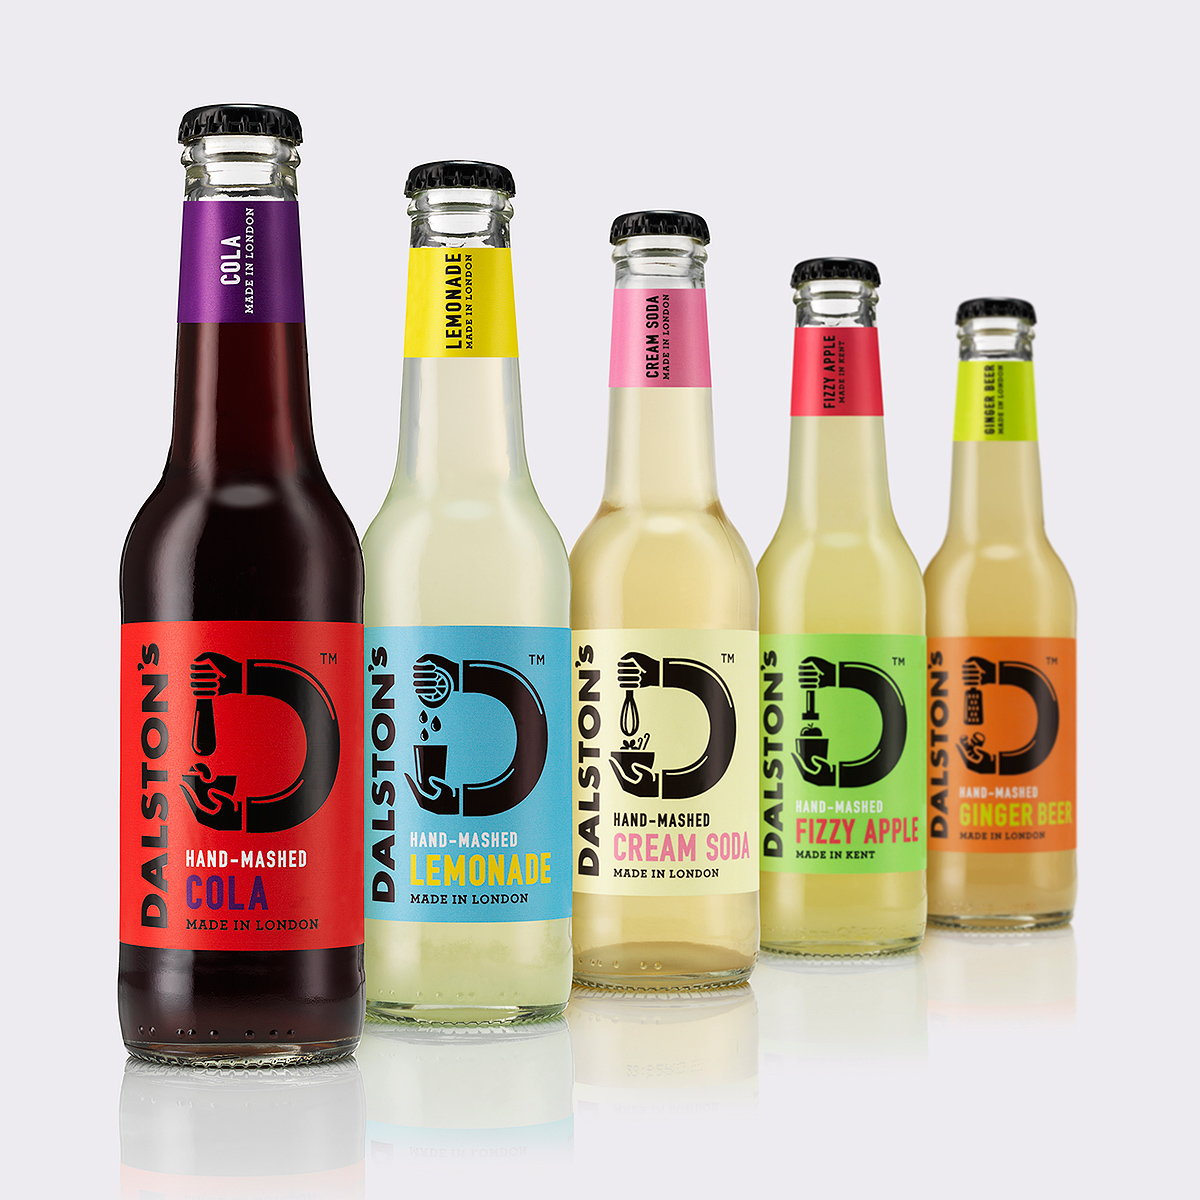 B&B Studio Creates Brand Identity for Craft Soft Drinks Company Dalston's